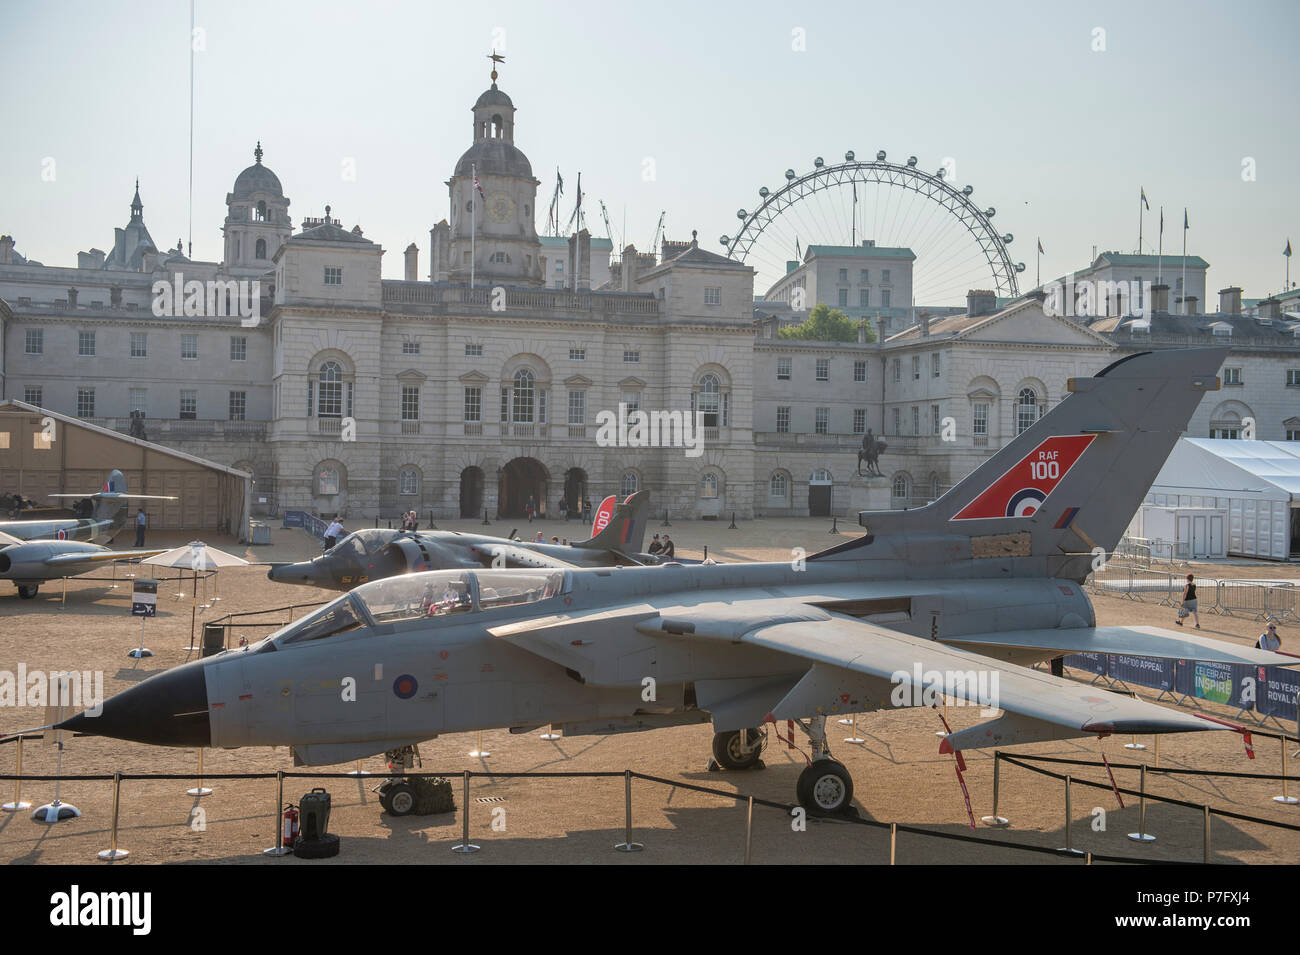 Horse Guards Parade, London, UK. 6 July, 2018. RAF100, an exhibition of aircraft covering the RAF's history, from WW1 and WW2 through to the modern age are displayed at Horse Guards Parade in central London, open to the public from 11.00am on 6th till 9th July 2018 with RAF uniformed re-enactors bringing the displays to life. Recently decommissioned Tornado GR1 on display, one of the RAF's longest serving jets. Credit: Malcolm Park/Alamy Live News. - Stock Image